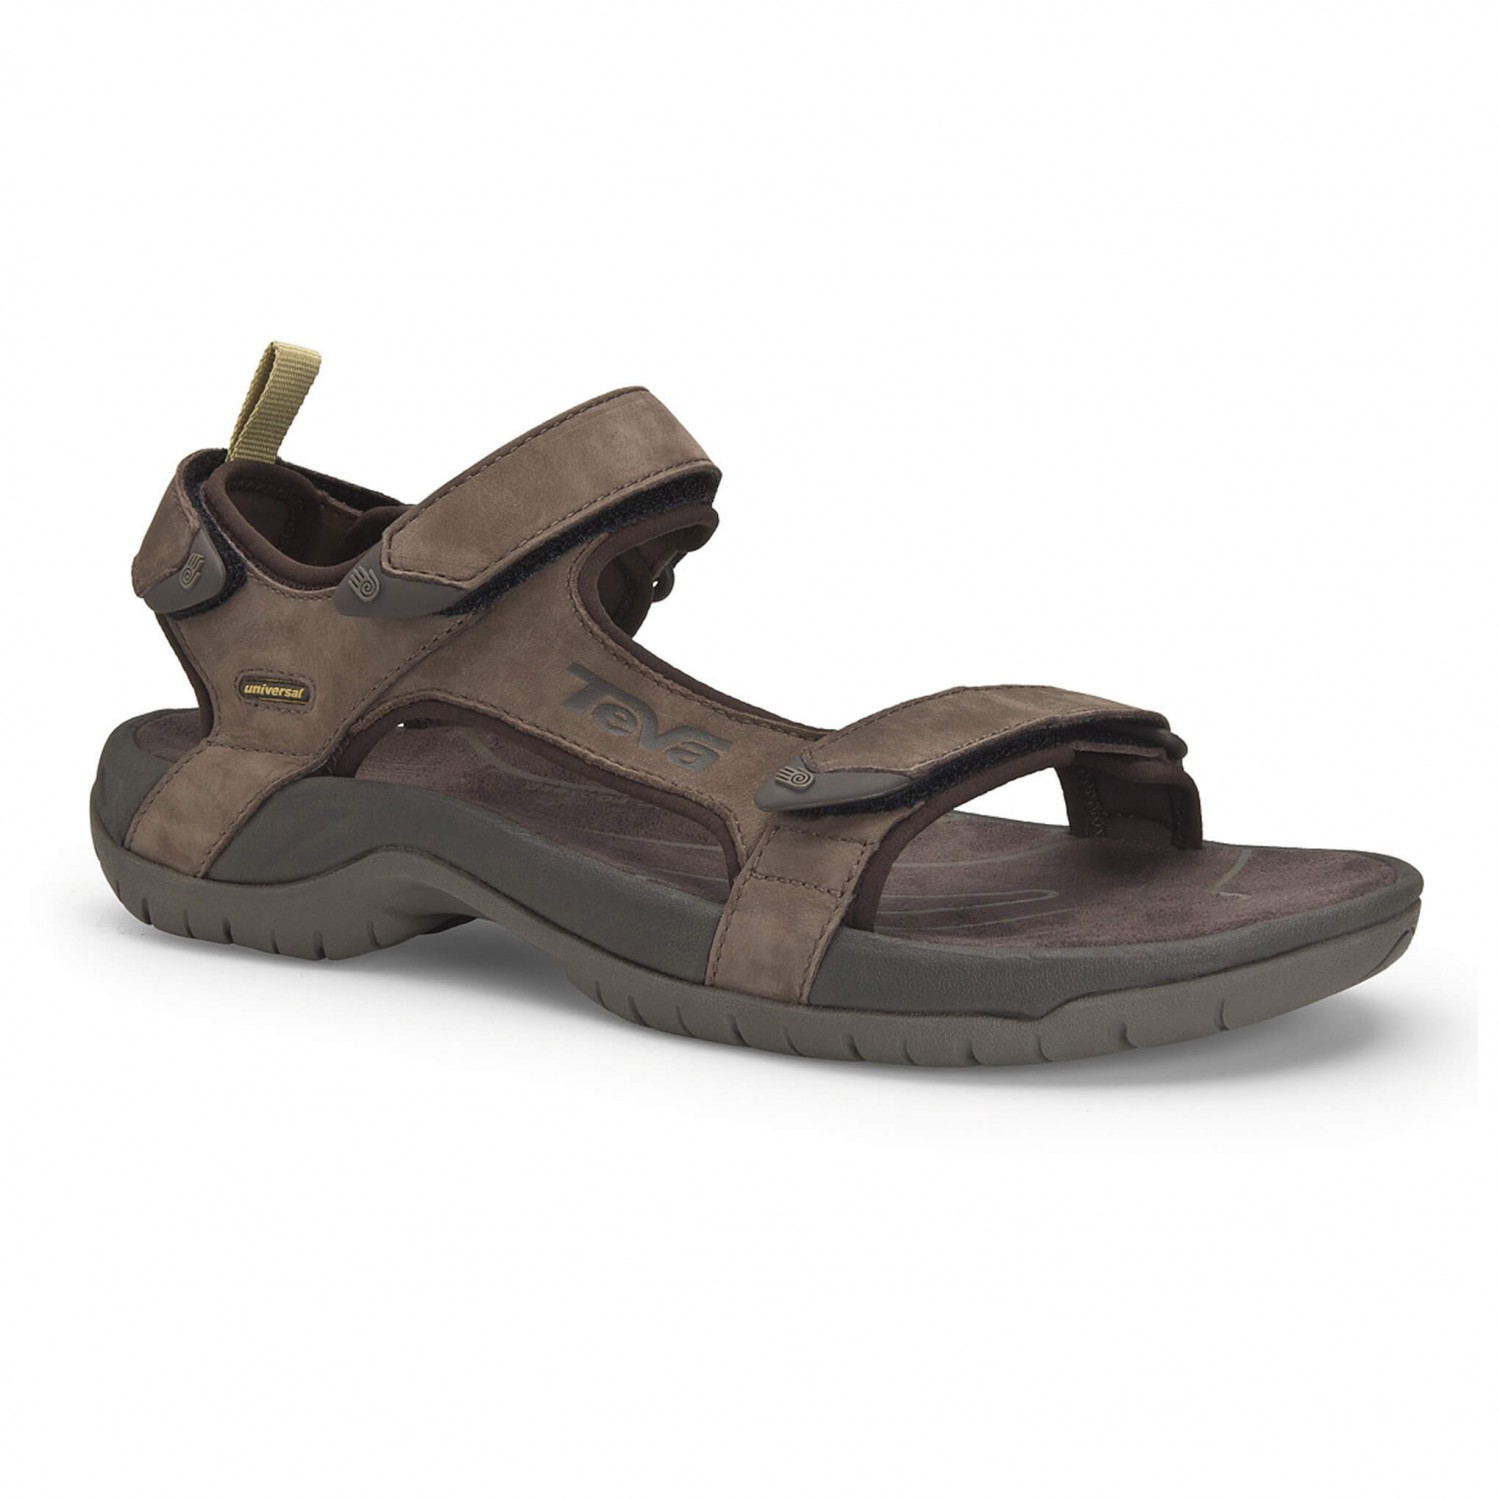 on sale d7e50 66b96 Teva - Tanza Leather - Sandals - Brown | 7 (US)